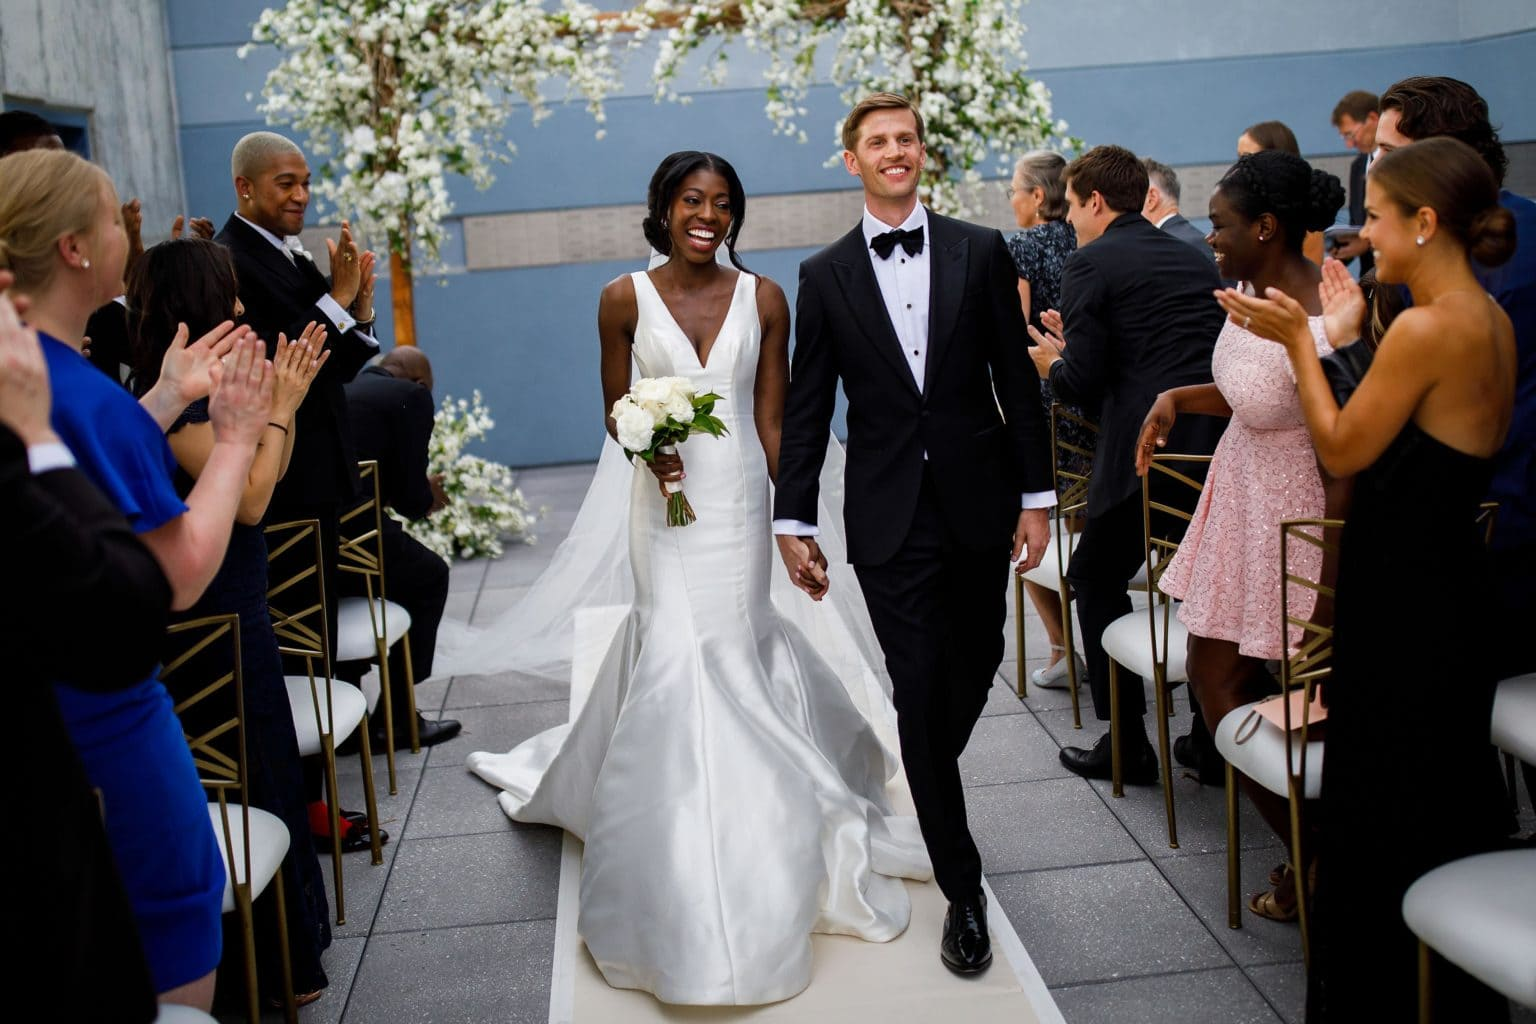 the bride and groom walk down the aisle following their wedding at the denver museum of nature and science